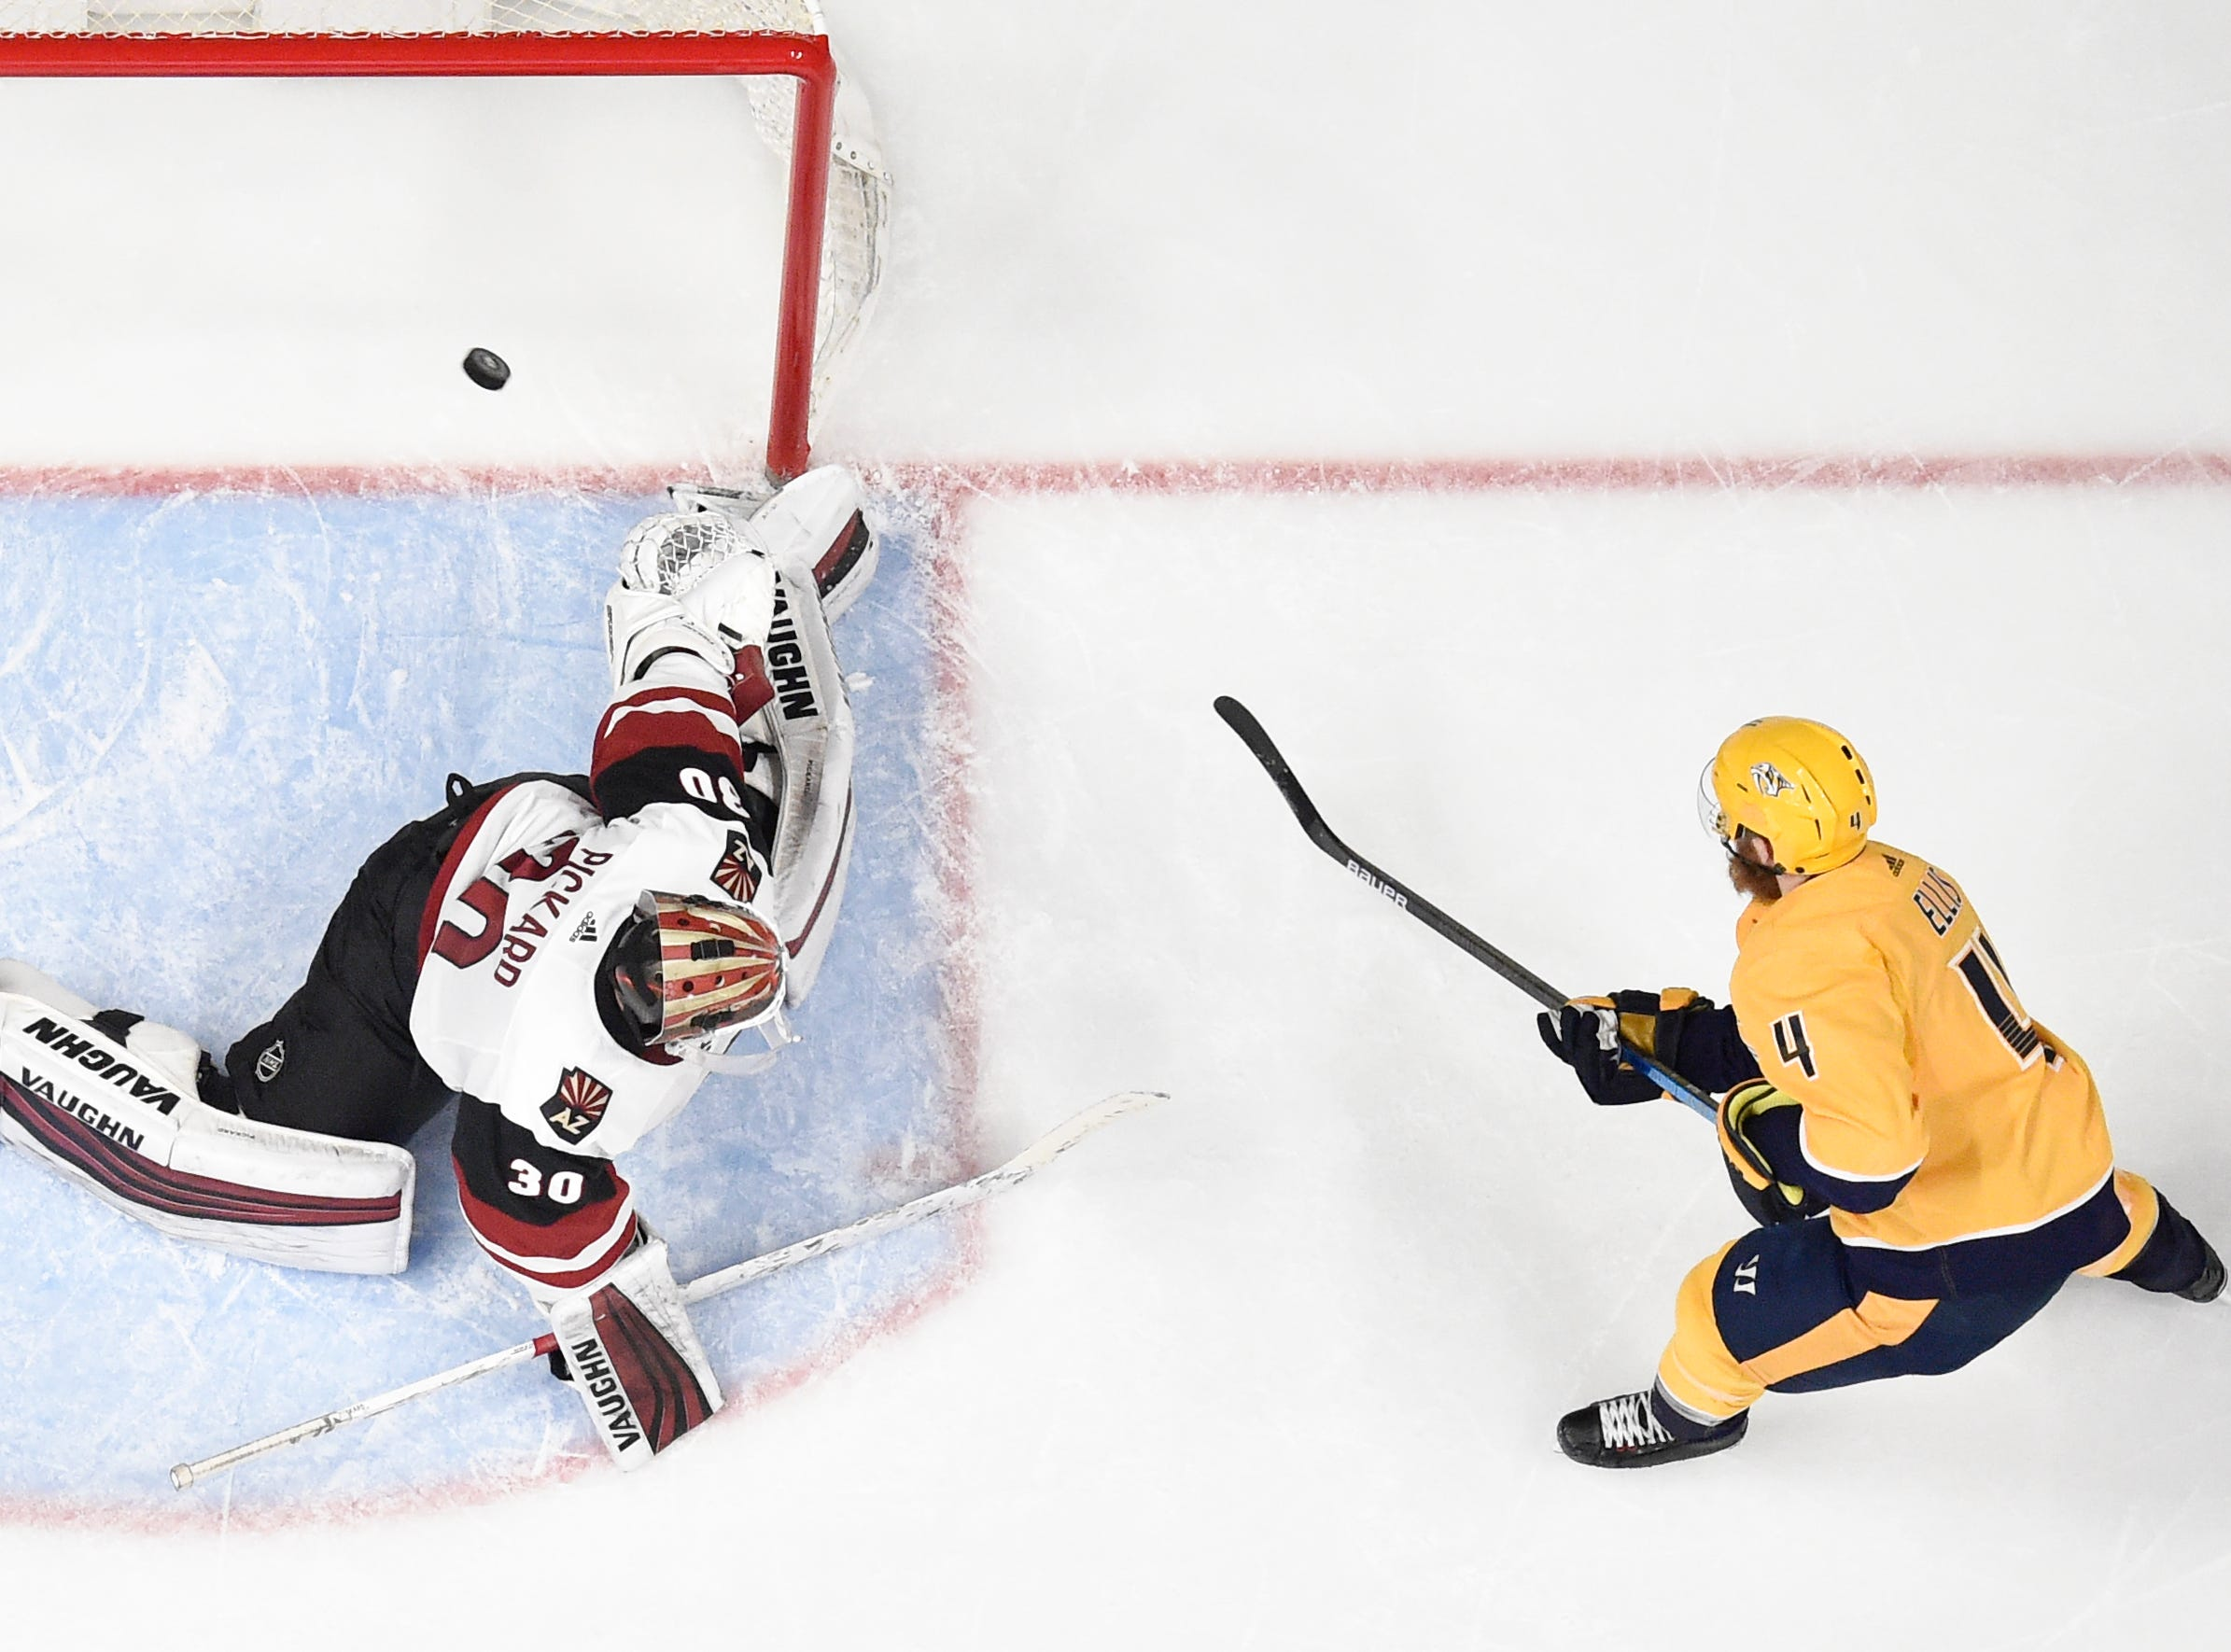 Nashville Predators defenseman Ryan Ellis (4) scores past Arizona Coyotes goaltender Calvin Pickard (30) during the second period at Bridgestone Arena in Nashville, Tenn., Tuesday, Feb. 5, 2019.